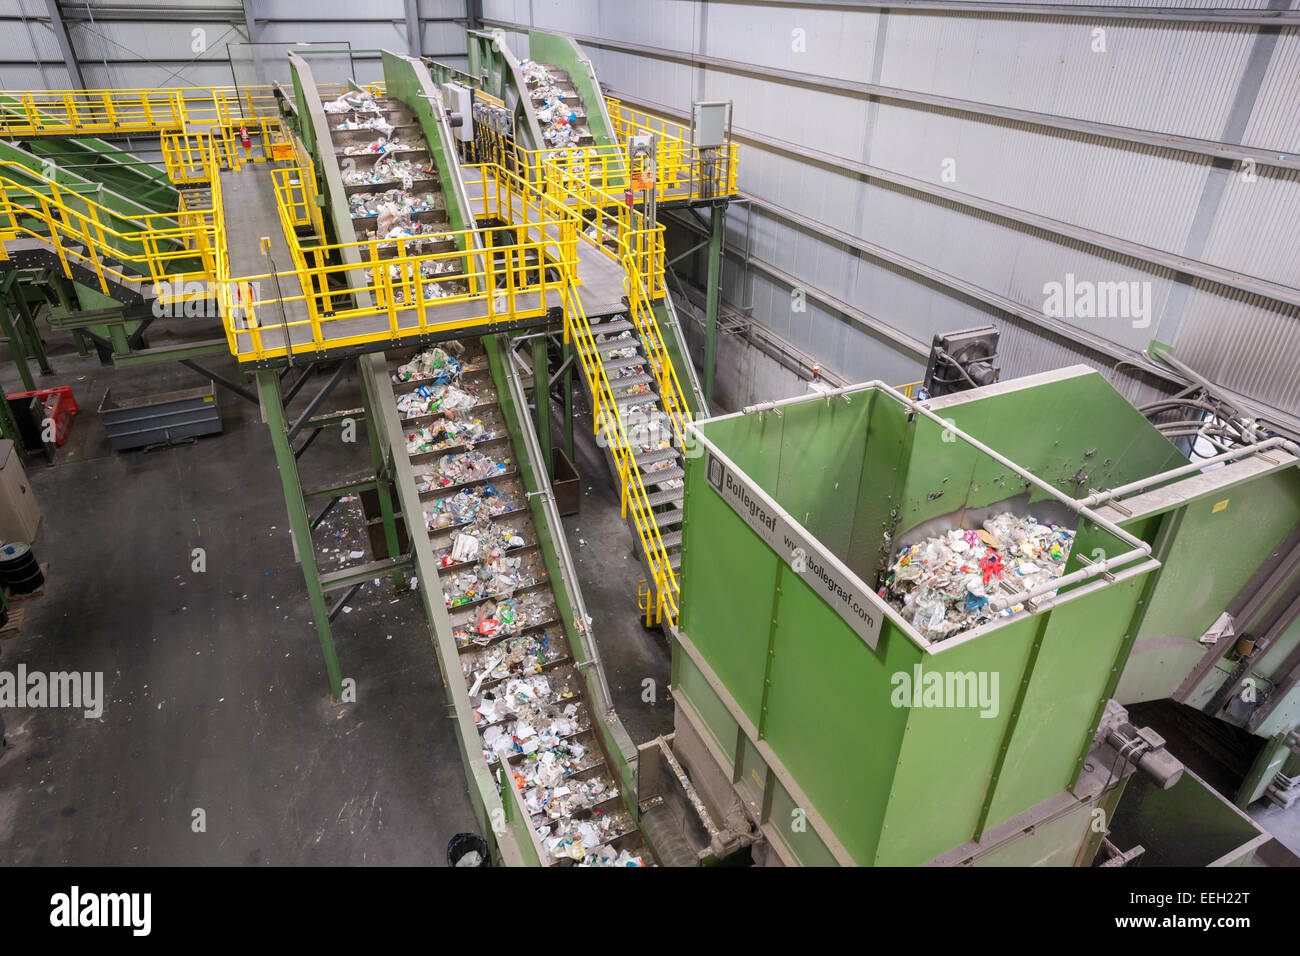 Machinery to process recyclables from the city's curbside recycling program at the Sims Municipal Recycling - Stock Image